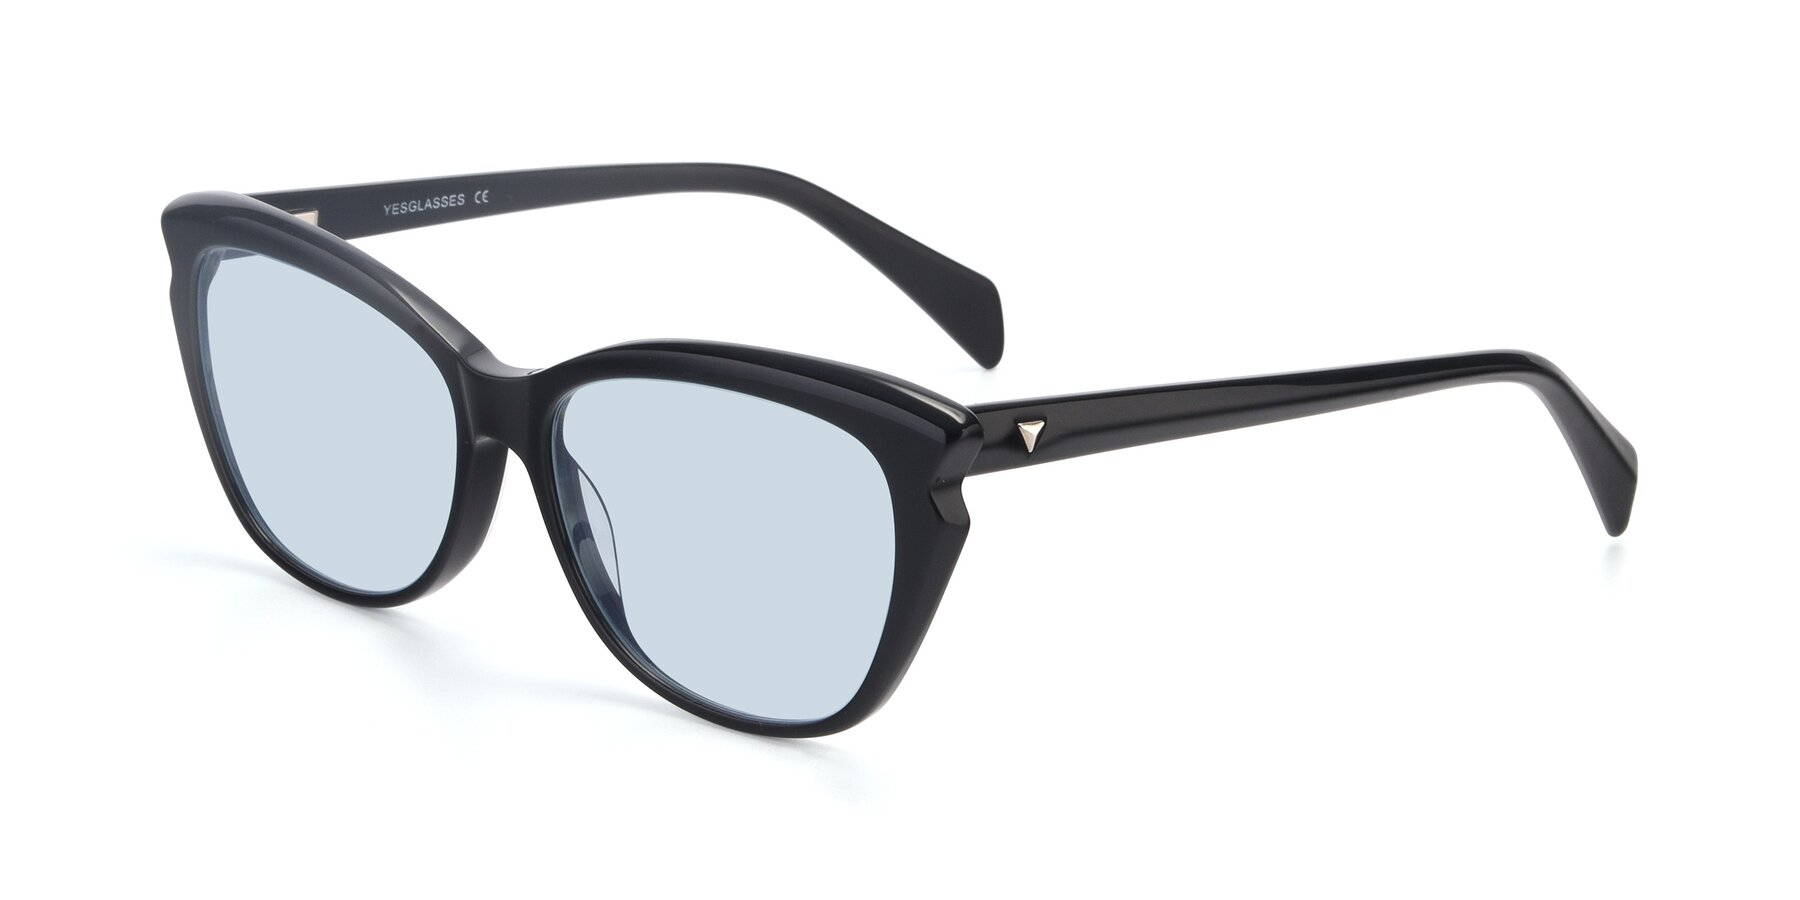 Angle of 17629 in Black with Light Blue Tinted Lenses